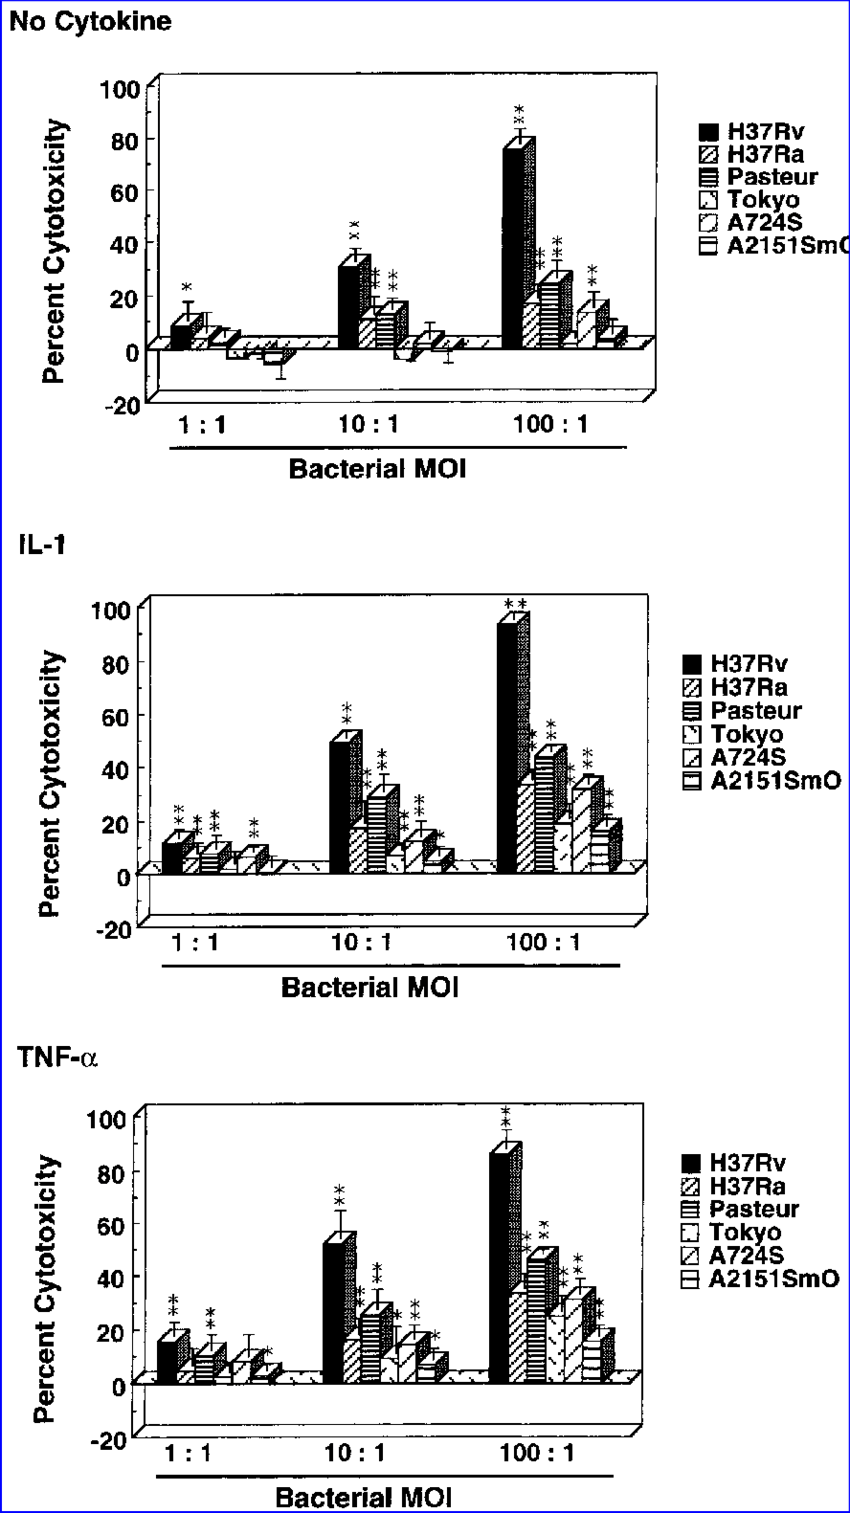 Comparison of the cytotoxicity of virulent and avirulent